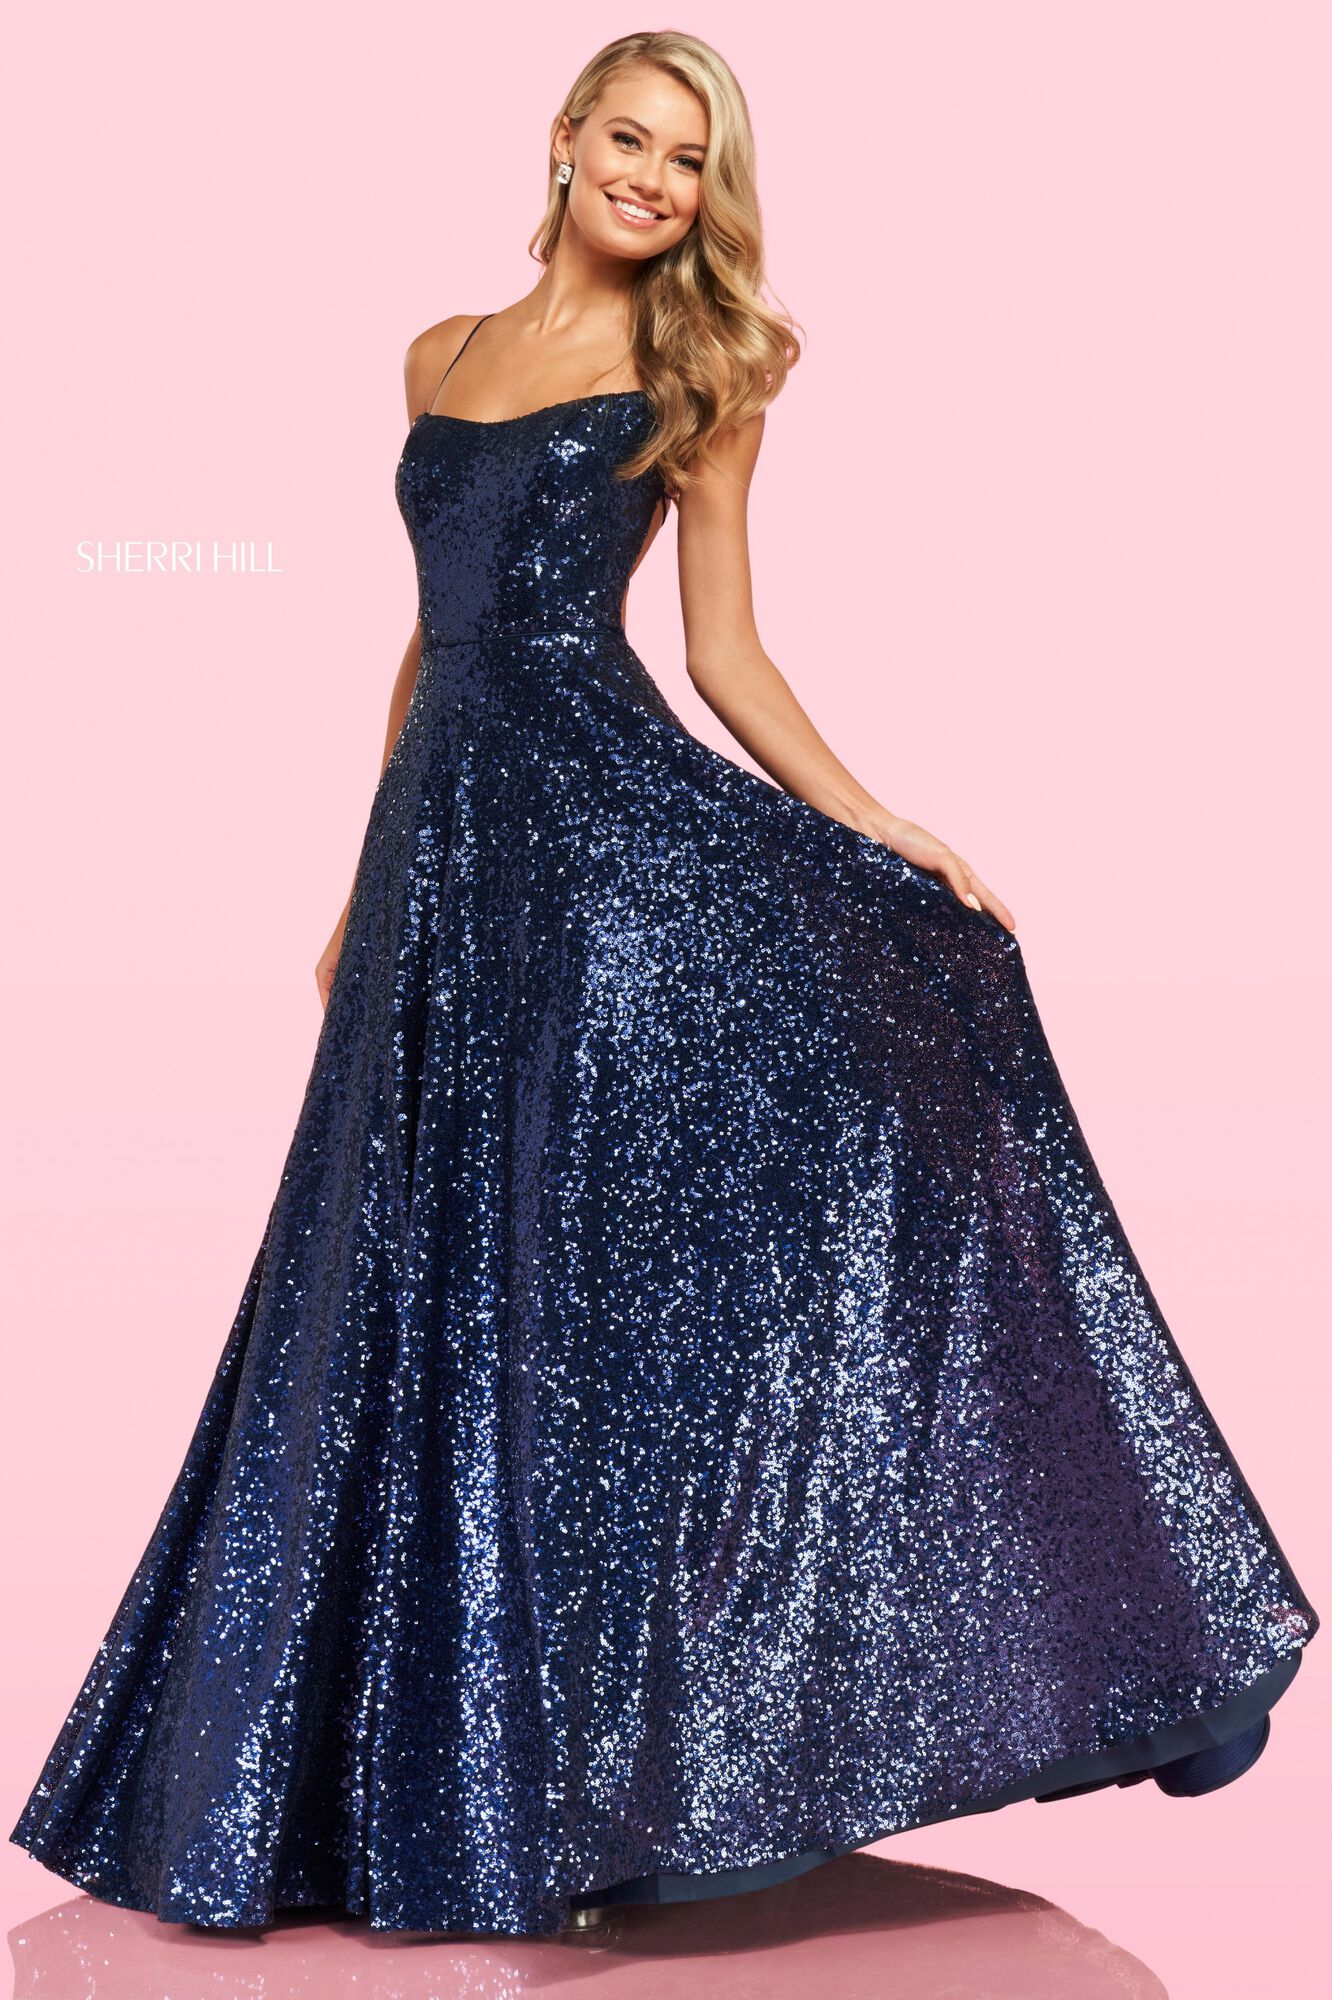 Prom Dresses for Every Personality: 6 Dress Ideas